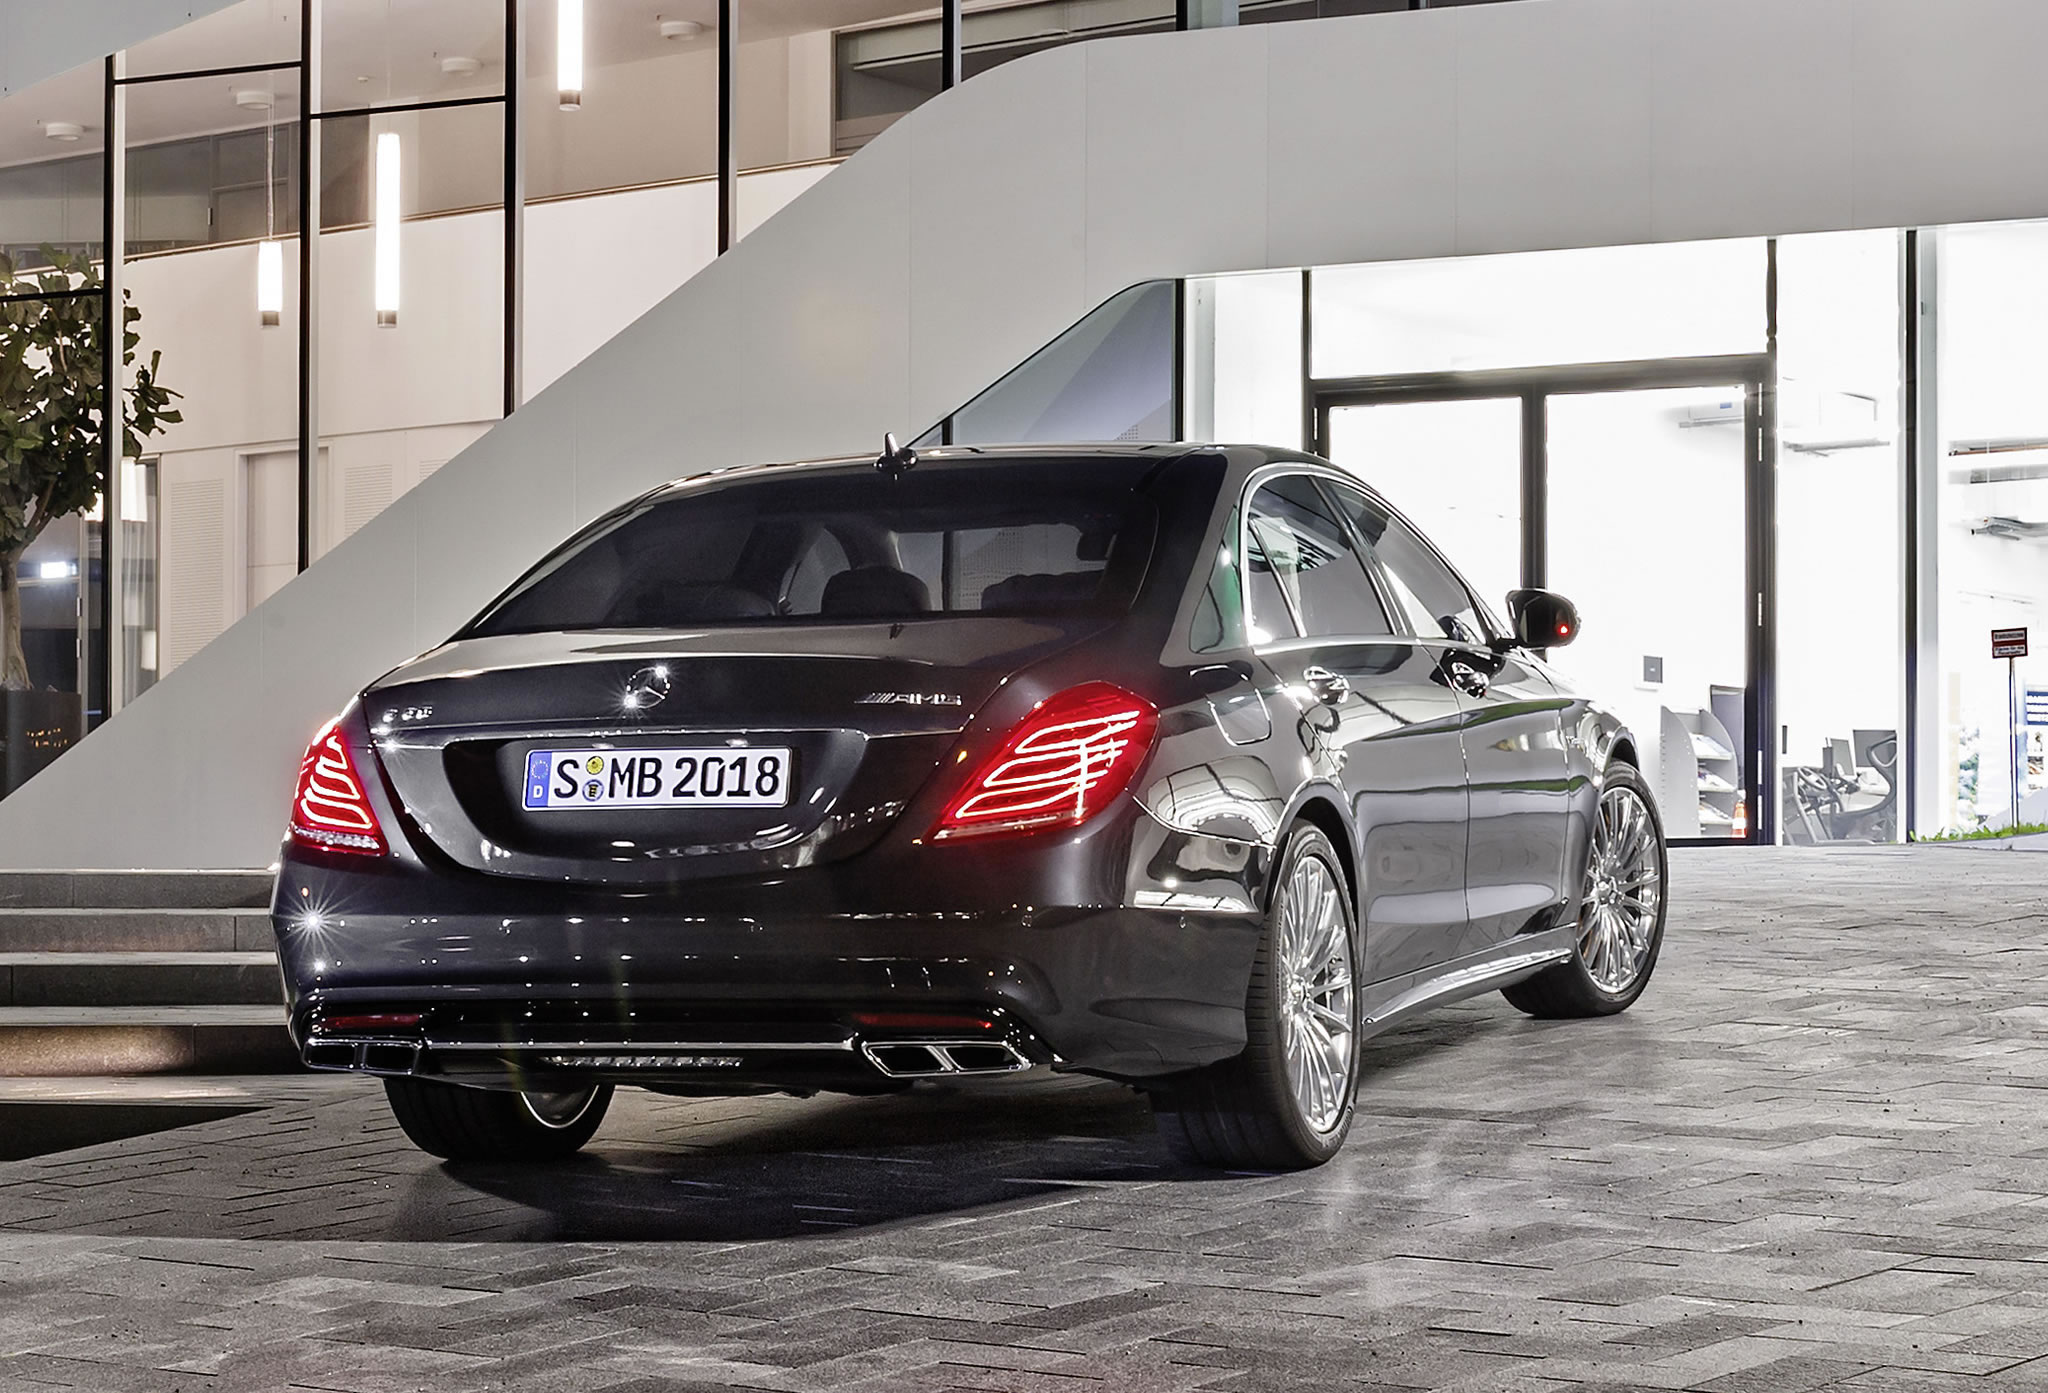 2014 mercedes benz s65 amg rear photo magnetite black for Mercedes benz s65 amg 2014